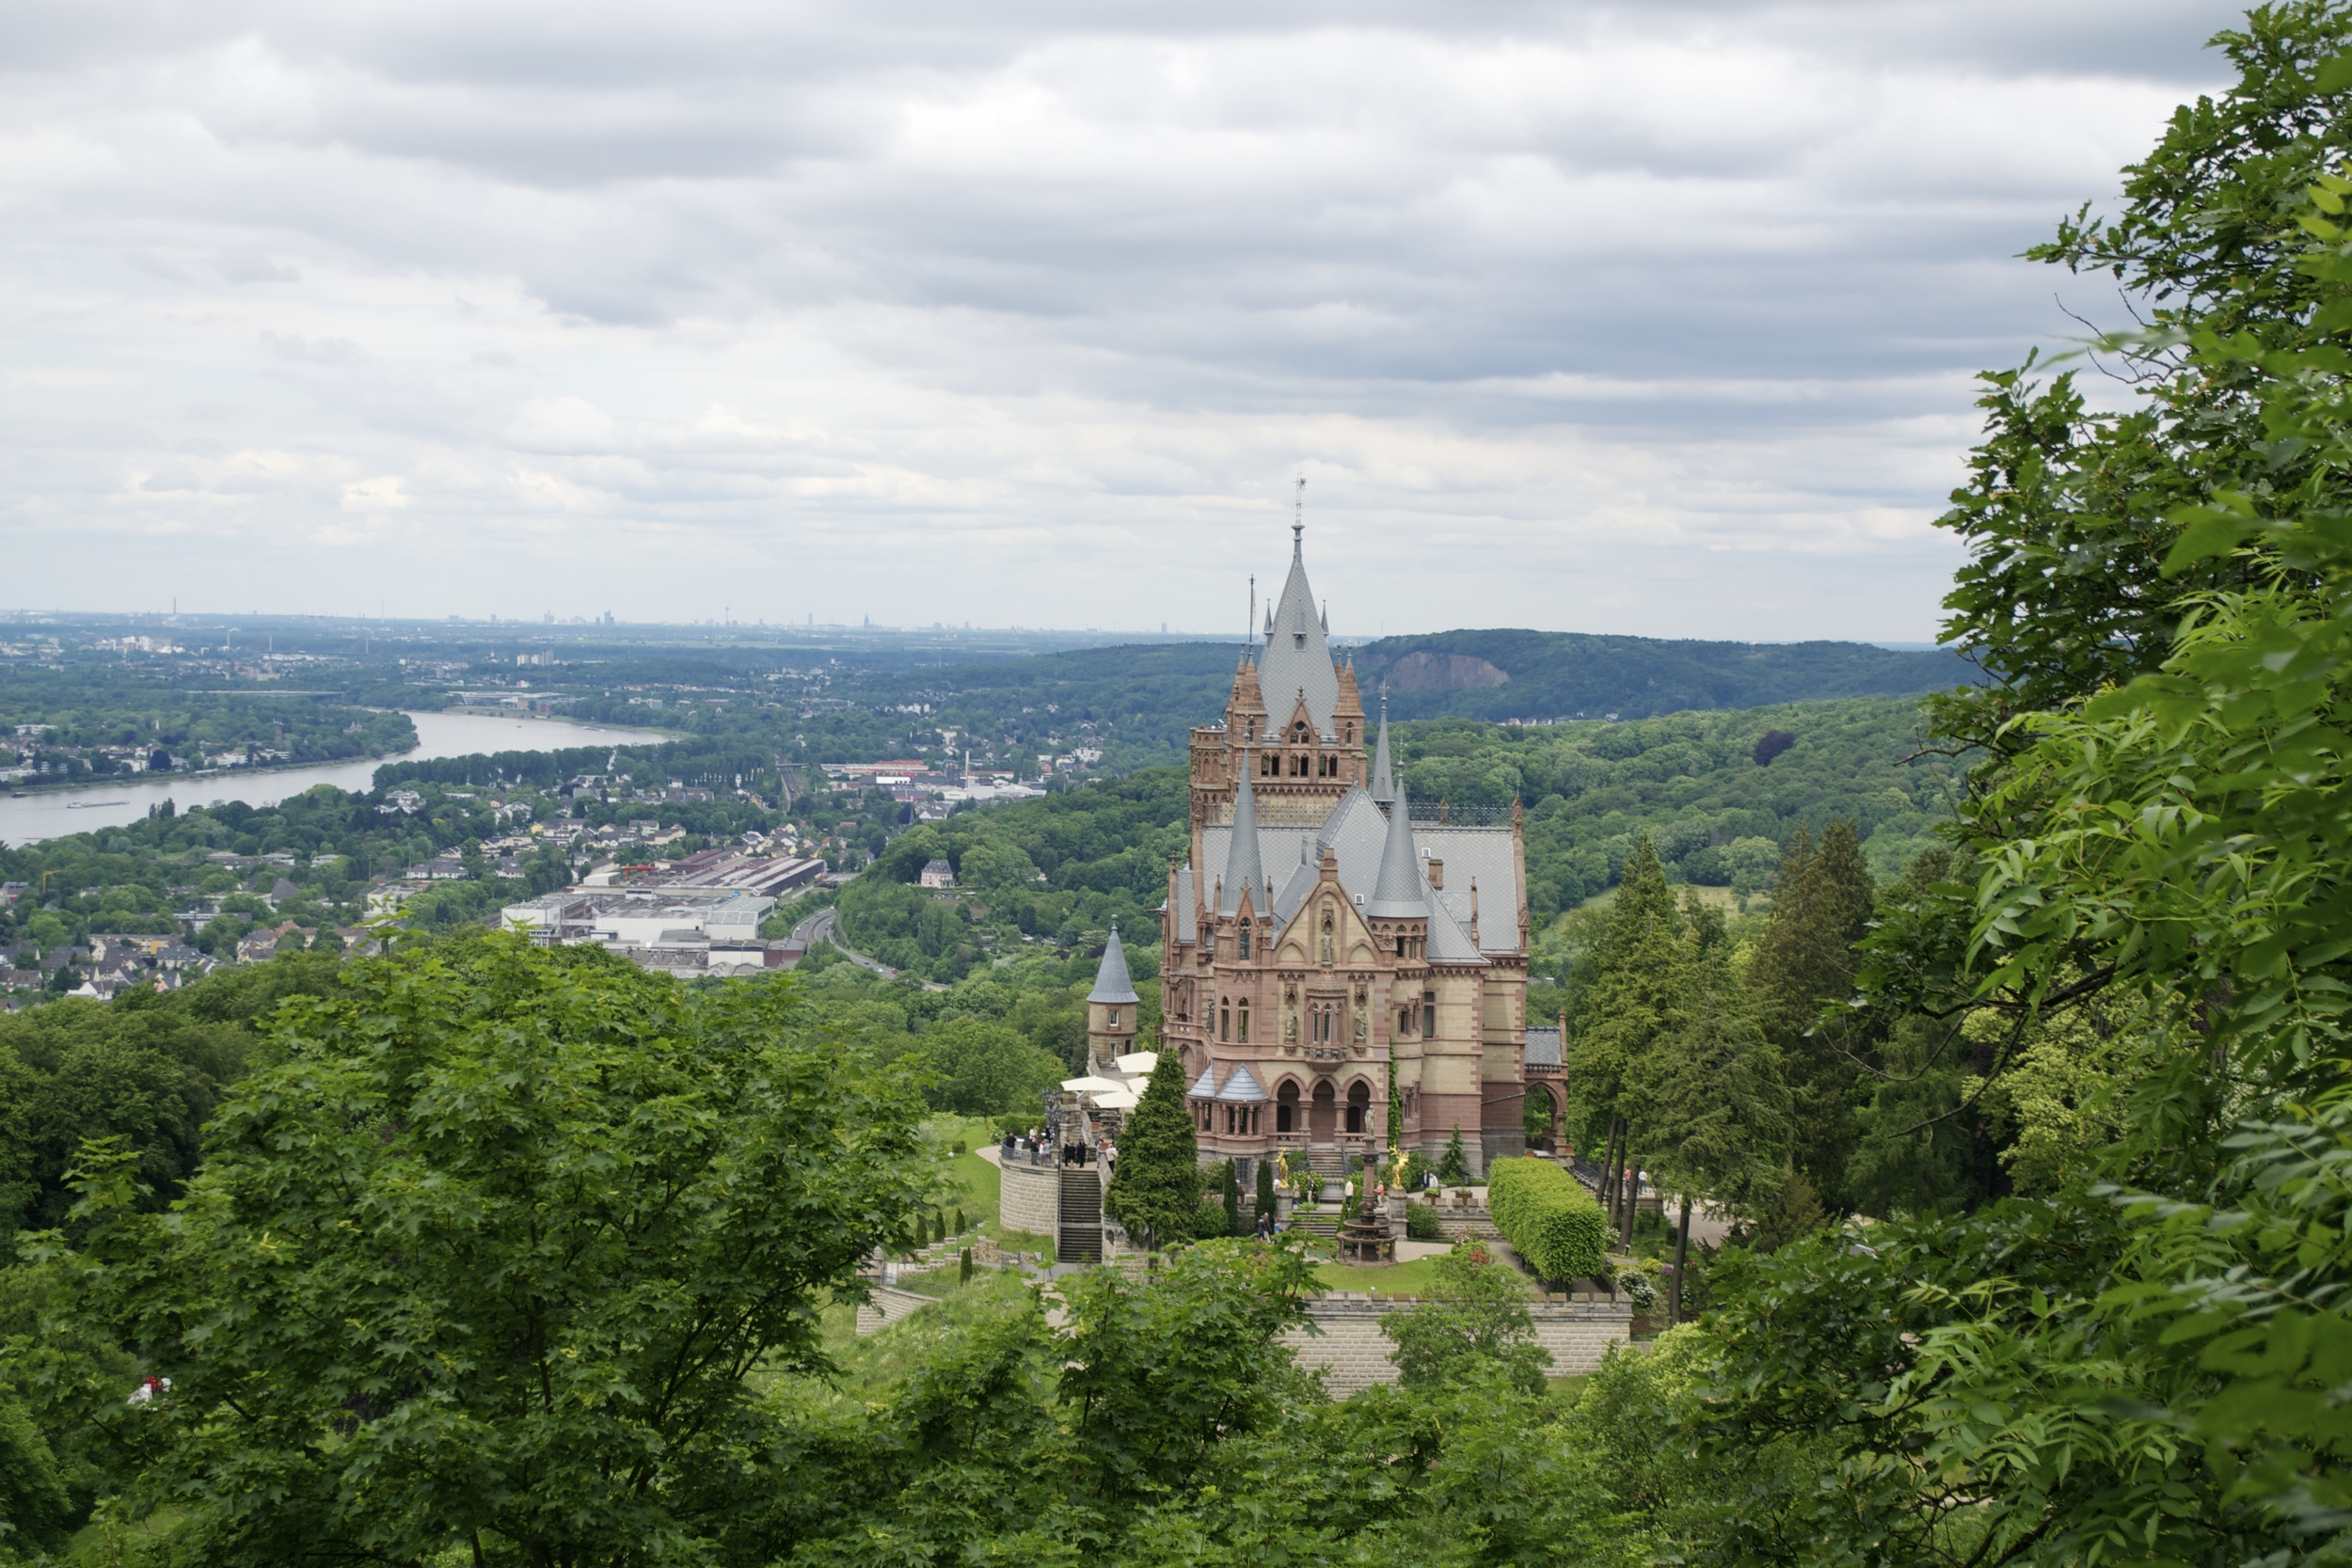 The view of Schloss Drachenburg from the hike up.